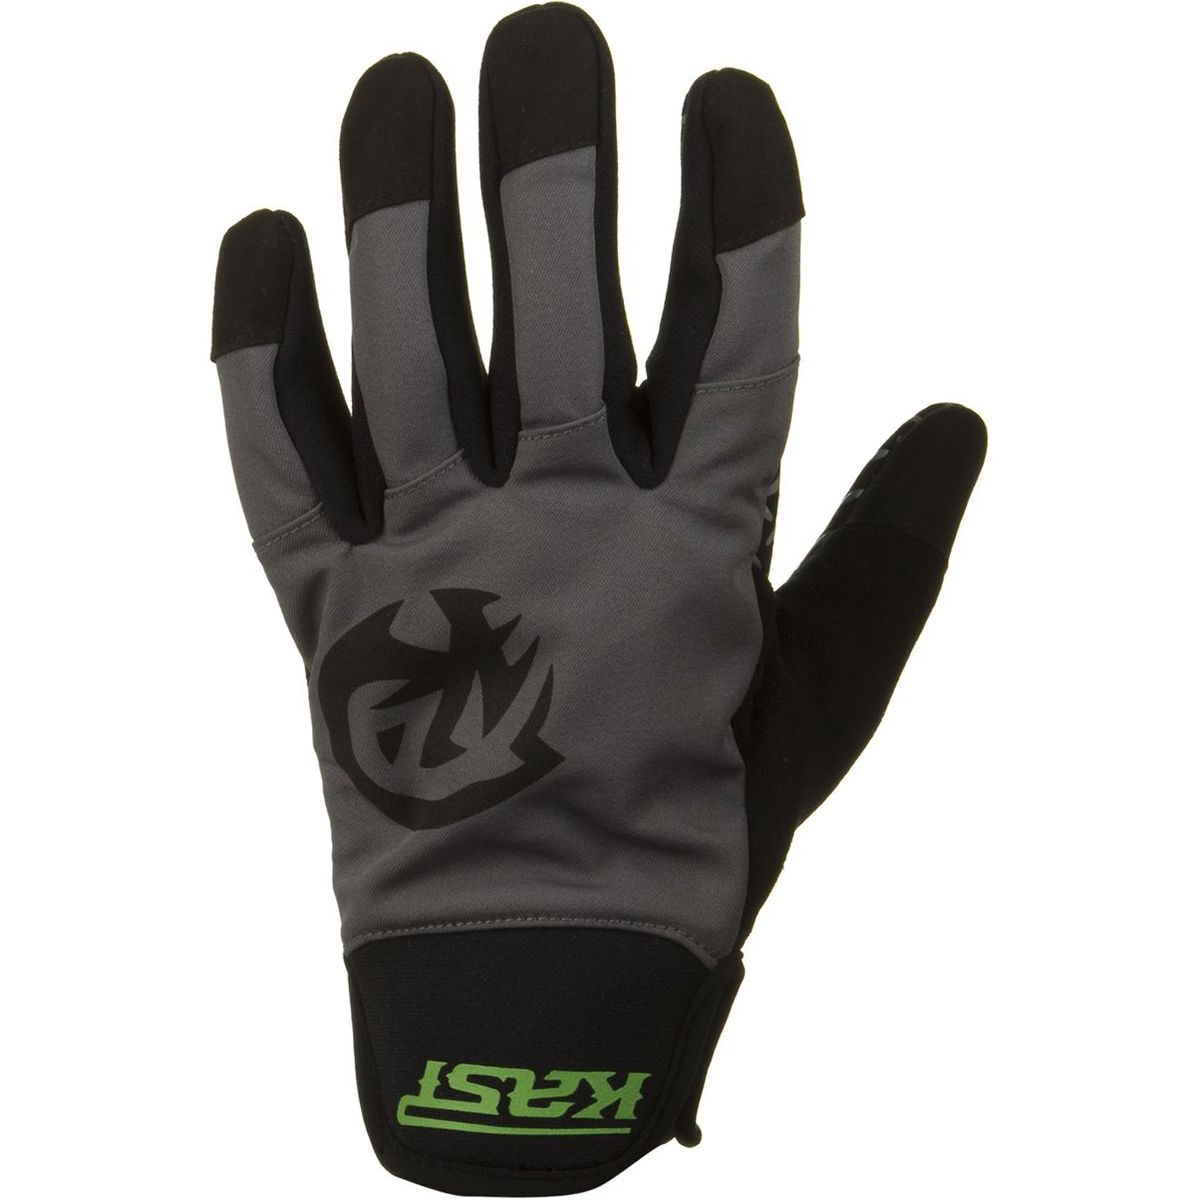 Kast Gear Raptor Glove Slate Grey Black XL